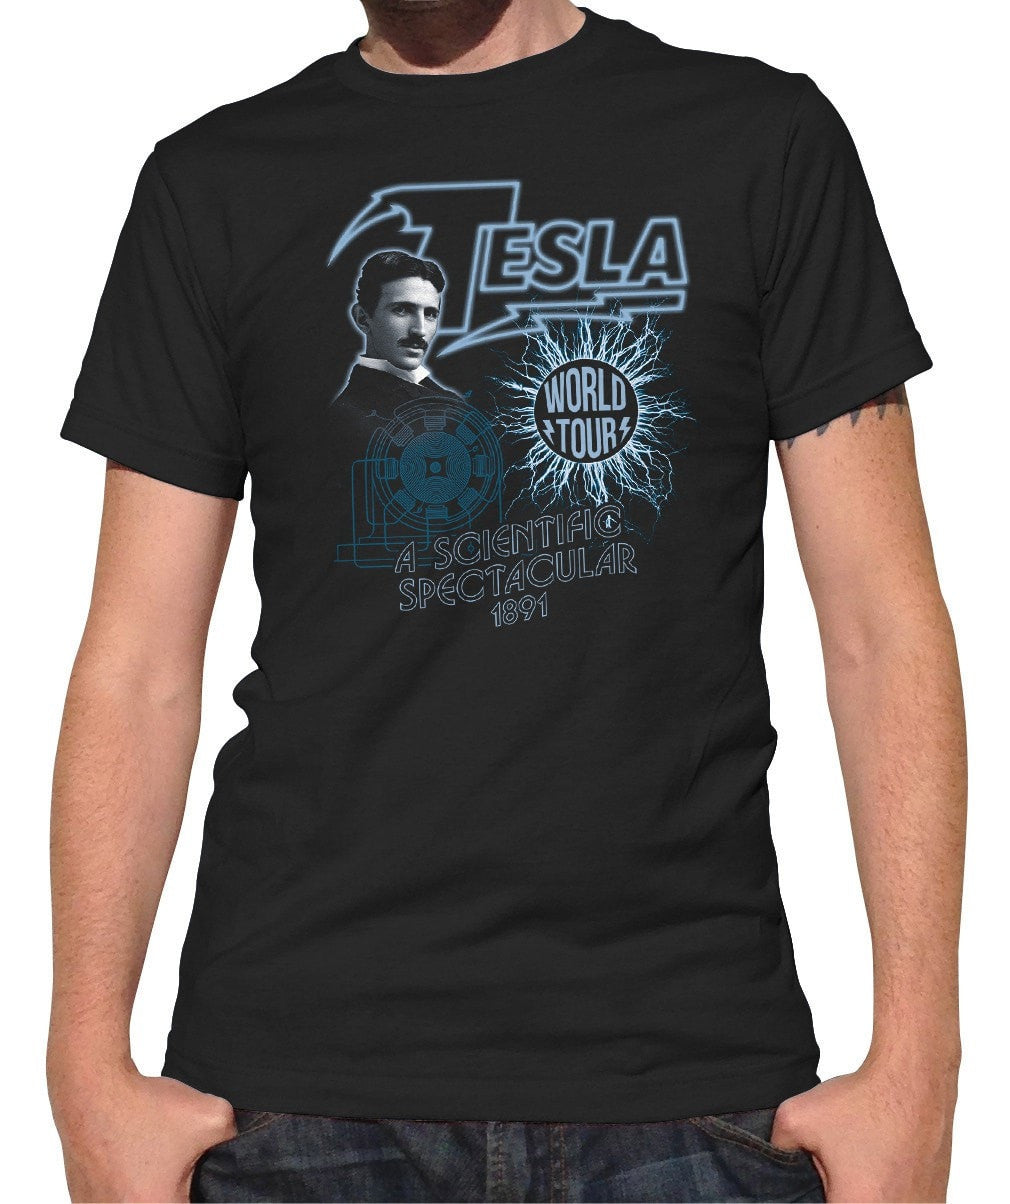 875aca12 101 T Shirts For Scientists Science Geeks And Nerds – EDGE ...